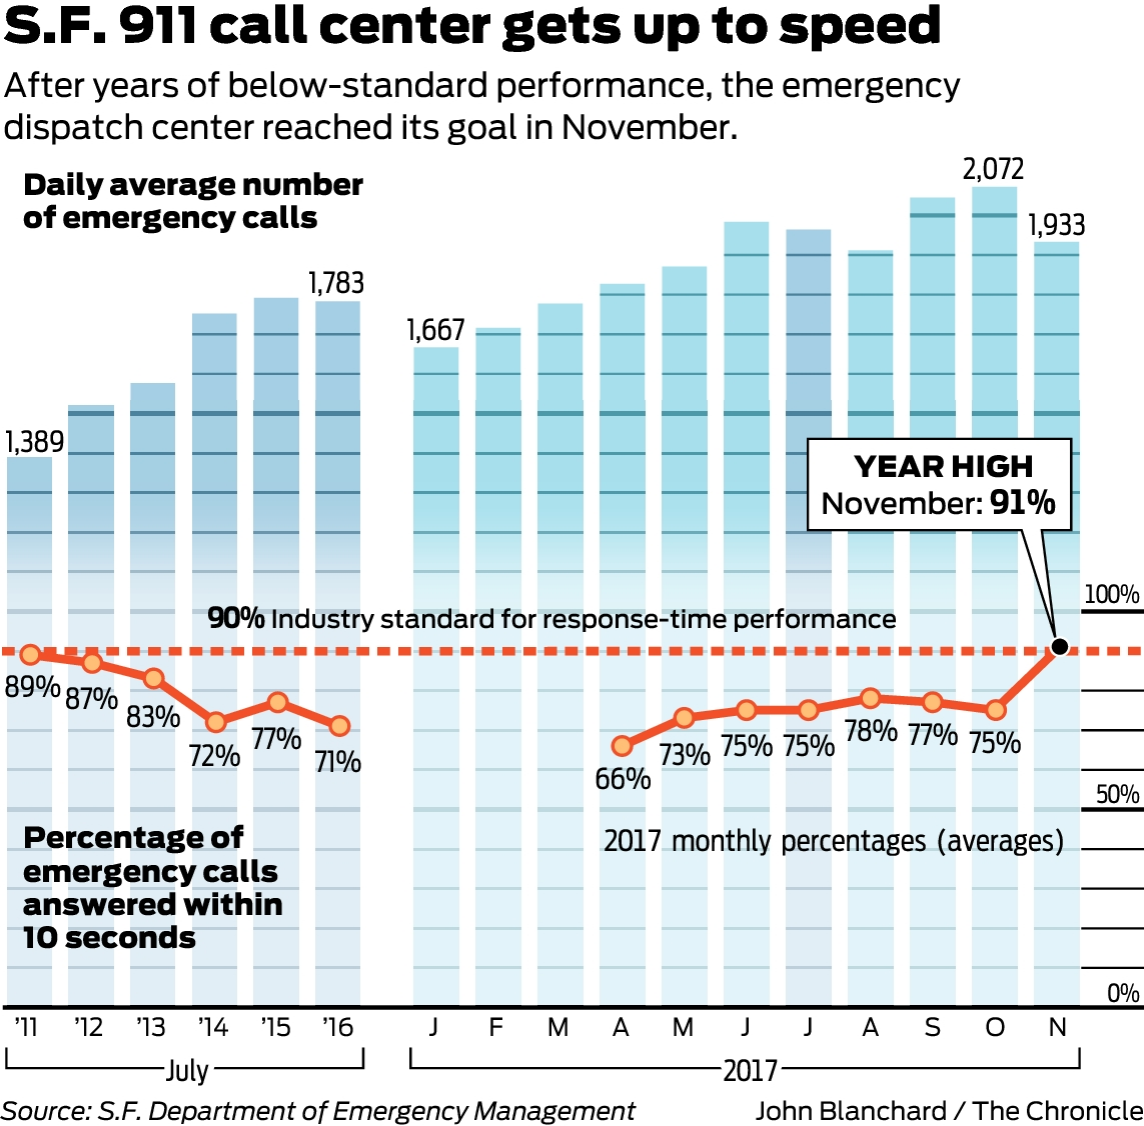 San Francisco's 911 call center finally getting up to speed